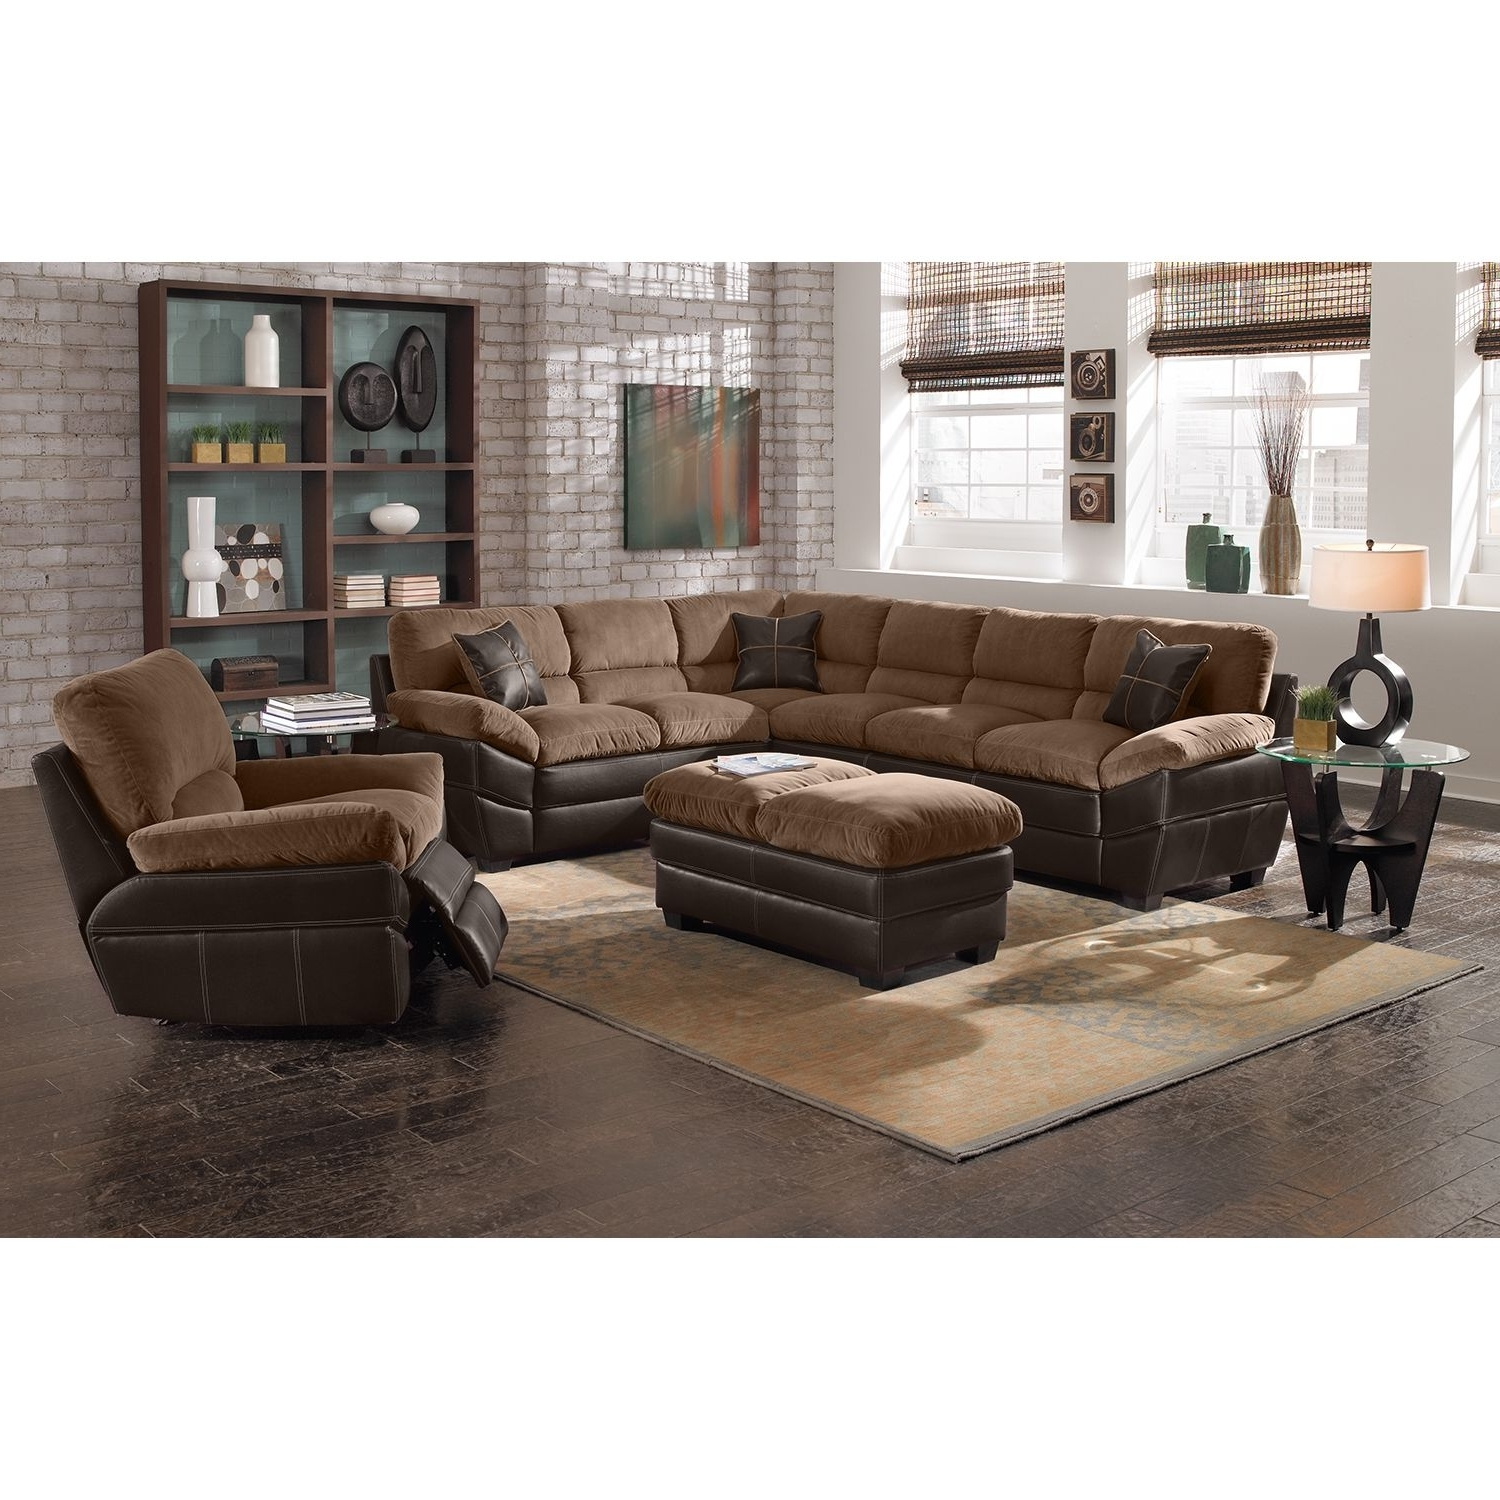 Well Known Value City Sectional Sofas Regarding Chandler Upholstery 2 Pc. Sectional – Value City Furniture (Gallery 5 of 20)